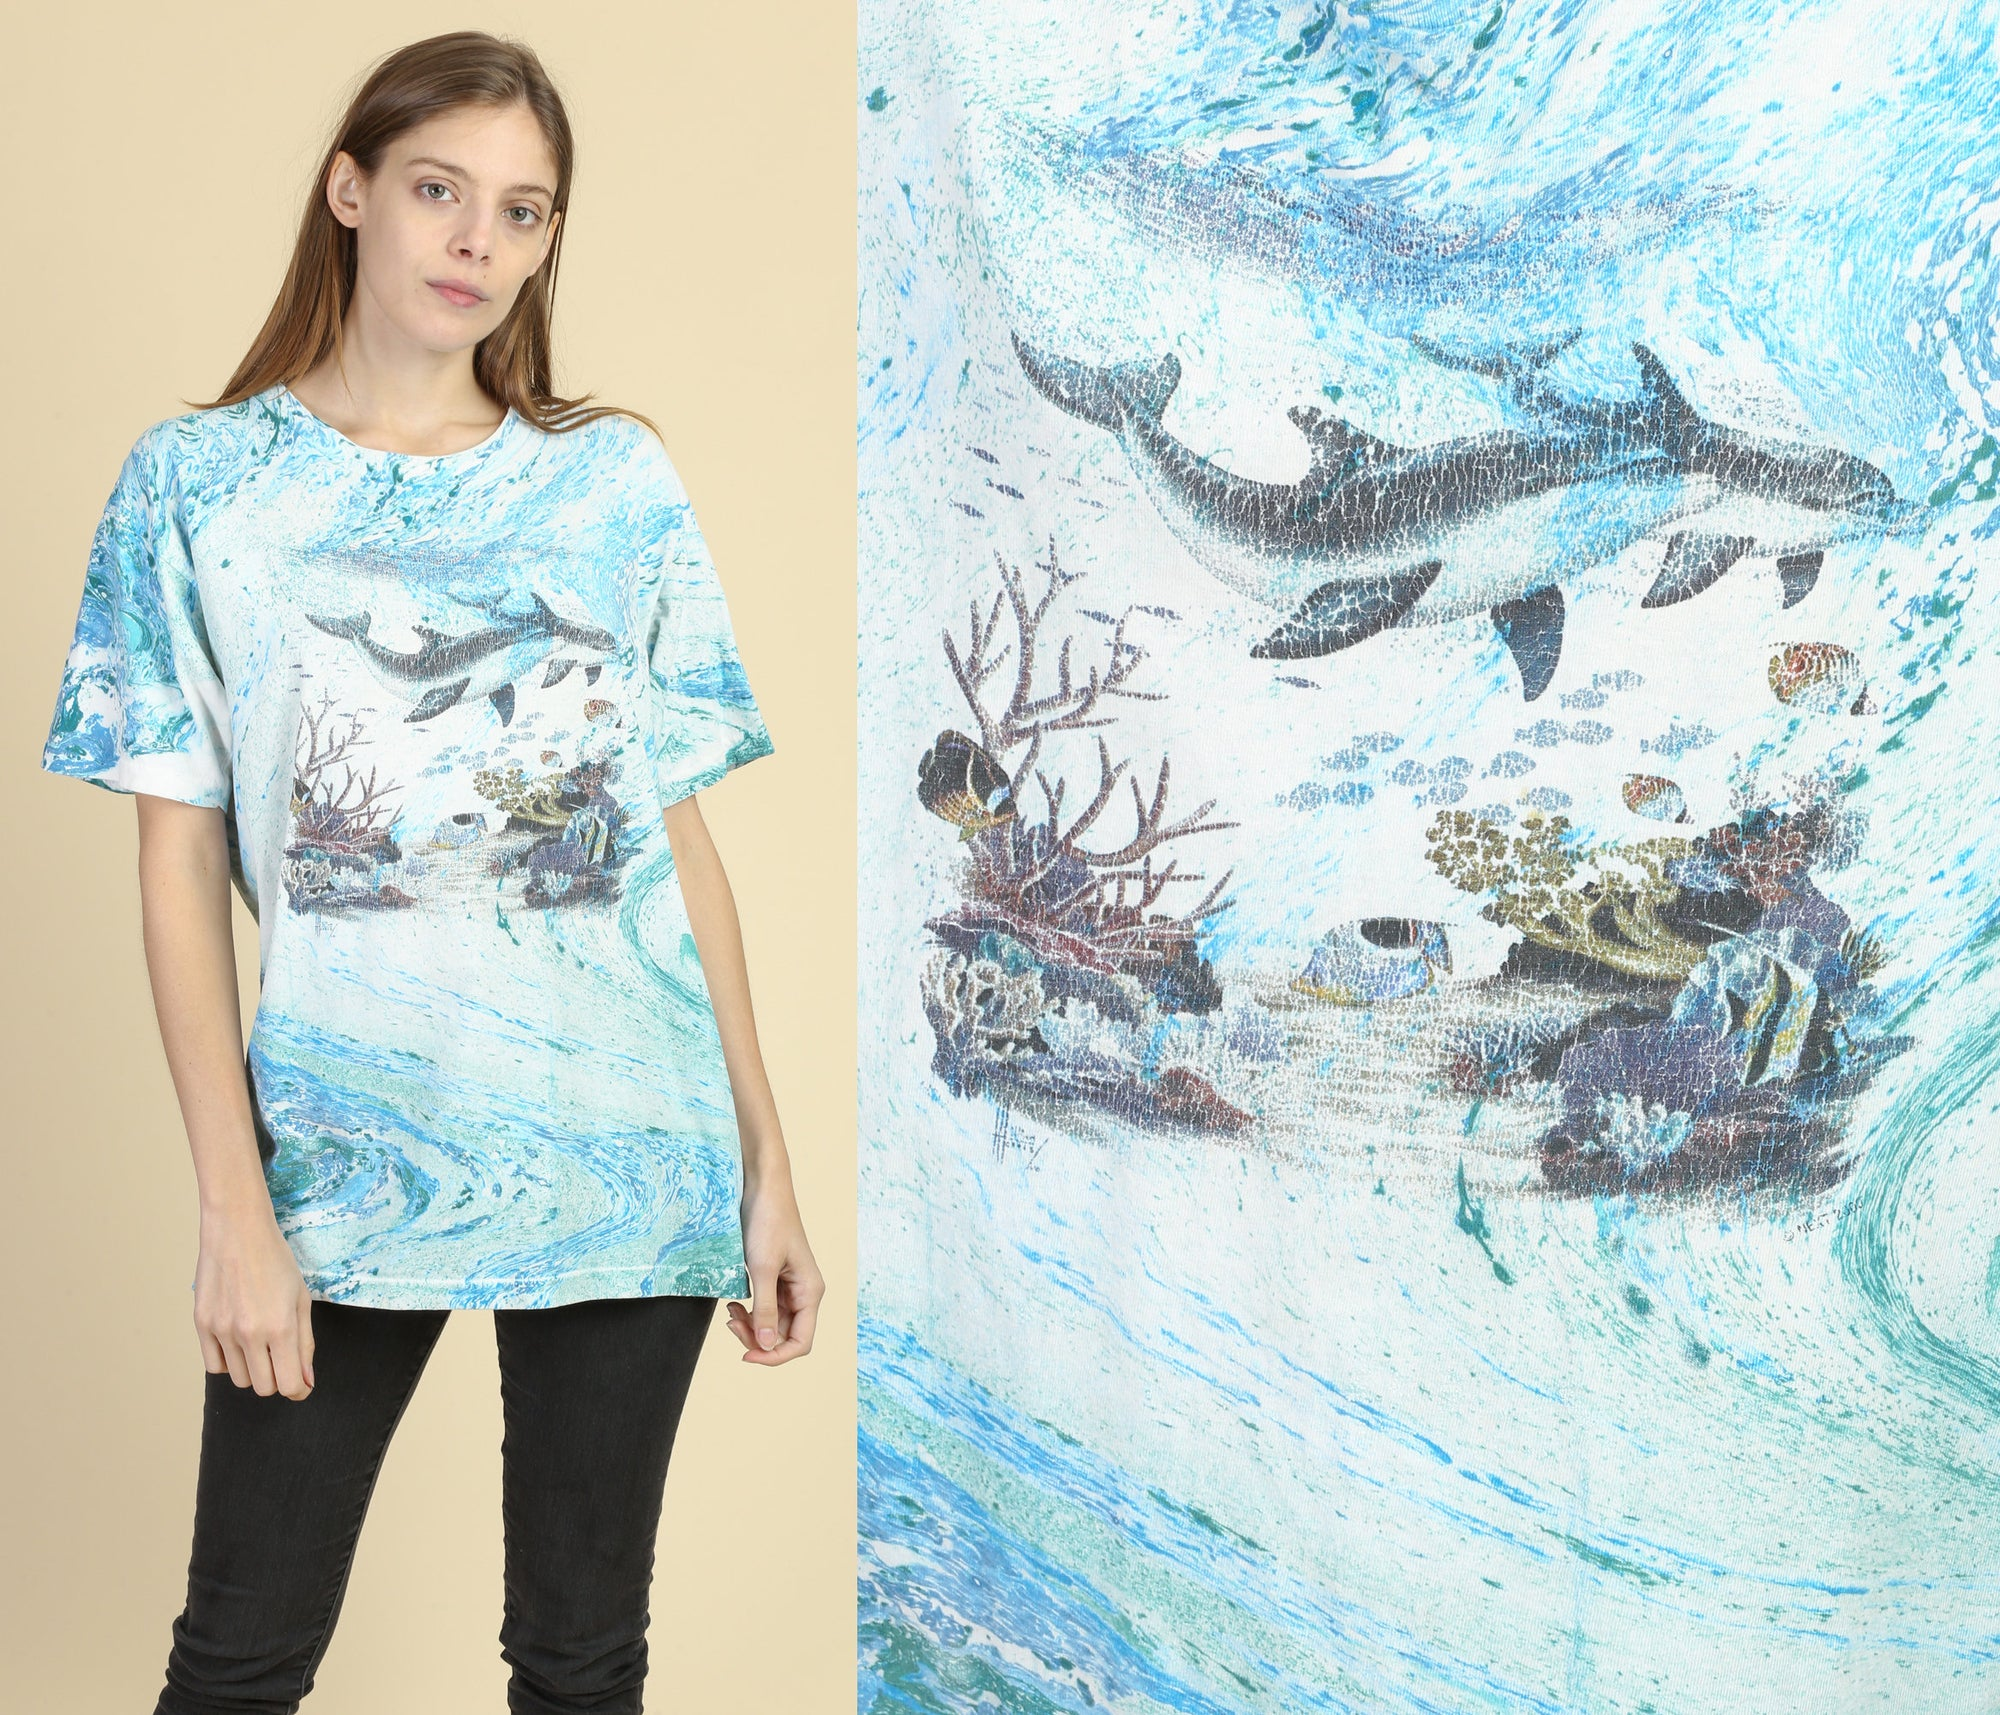 90s Dolphin All Over Print Tee - Large